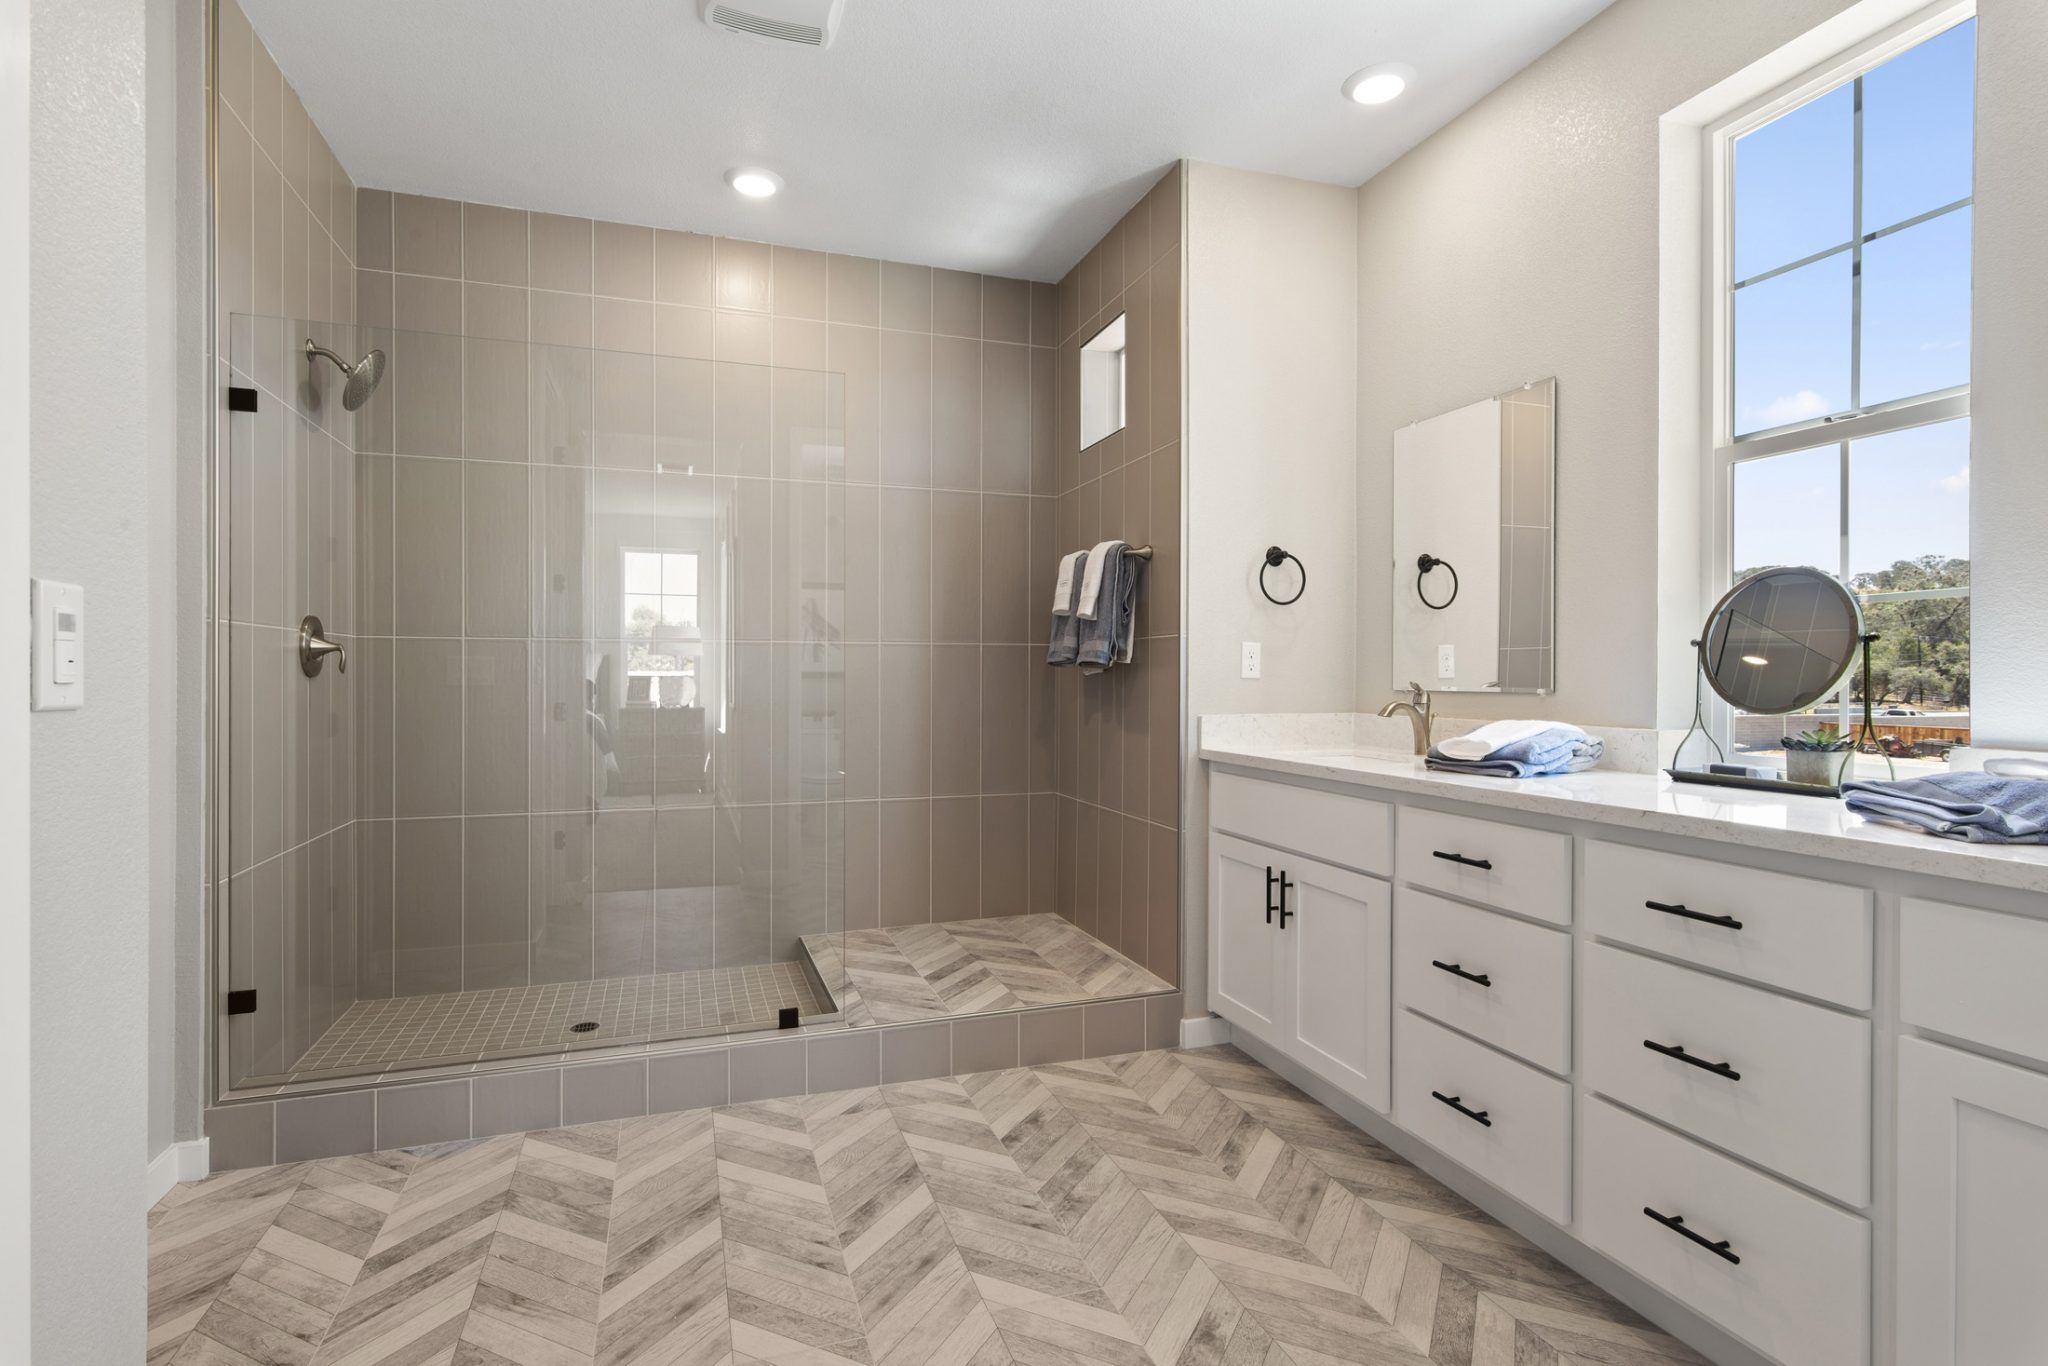 Bathroom featured in the Lupine By Blue Mountain Communities in Sacramento, CA